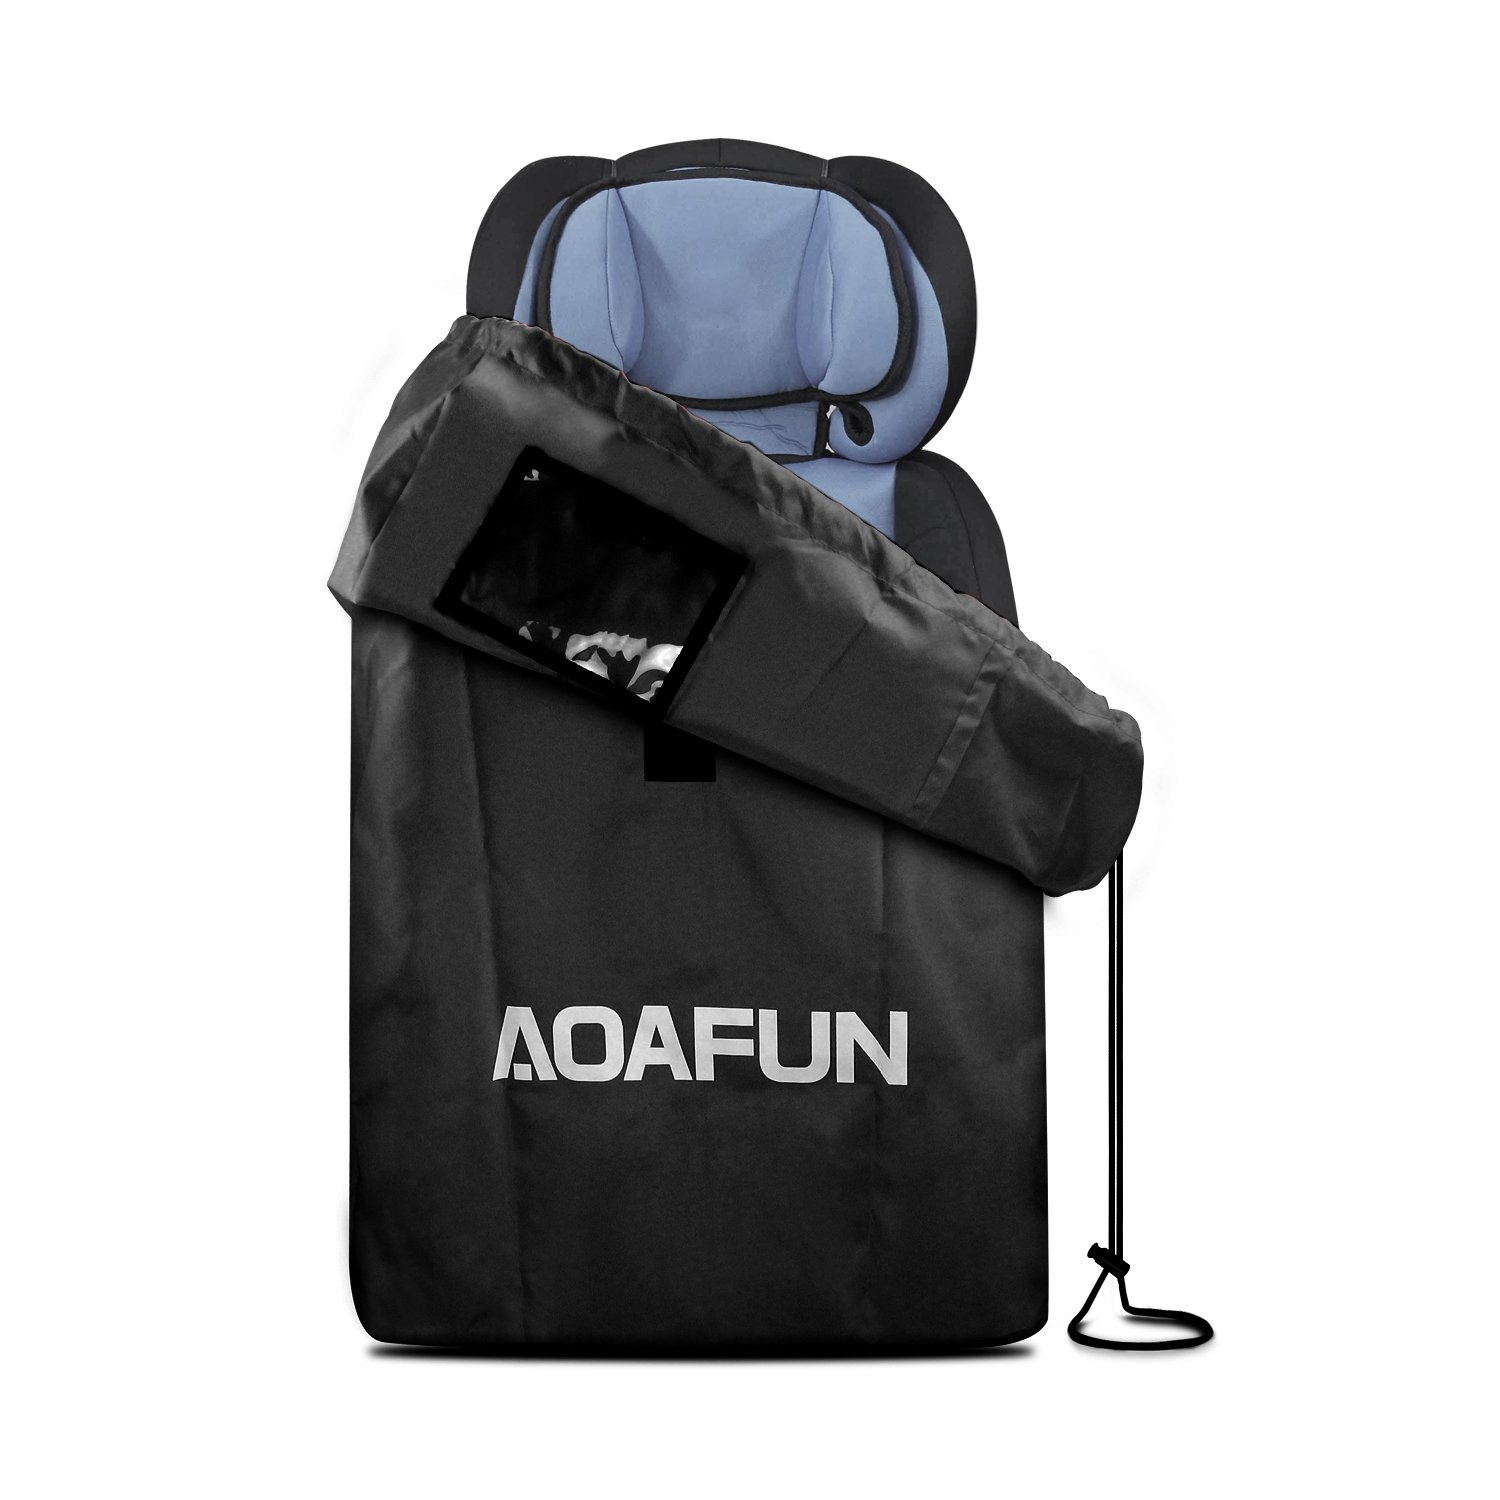 AOAFUN Car Seat Travel Bag,Gate Check Bag for Car Seats,Backpack Padded  for Strollers ,Pushchairs, Wheelchairs, Water Resistant for Airplanes Trains- (Black)